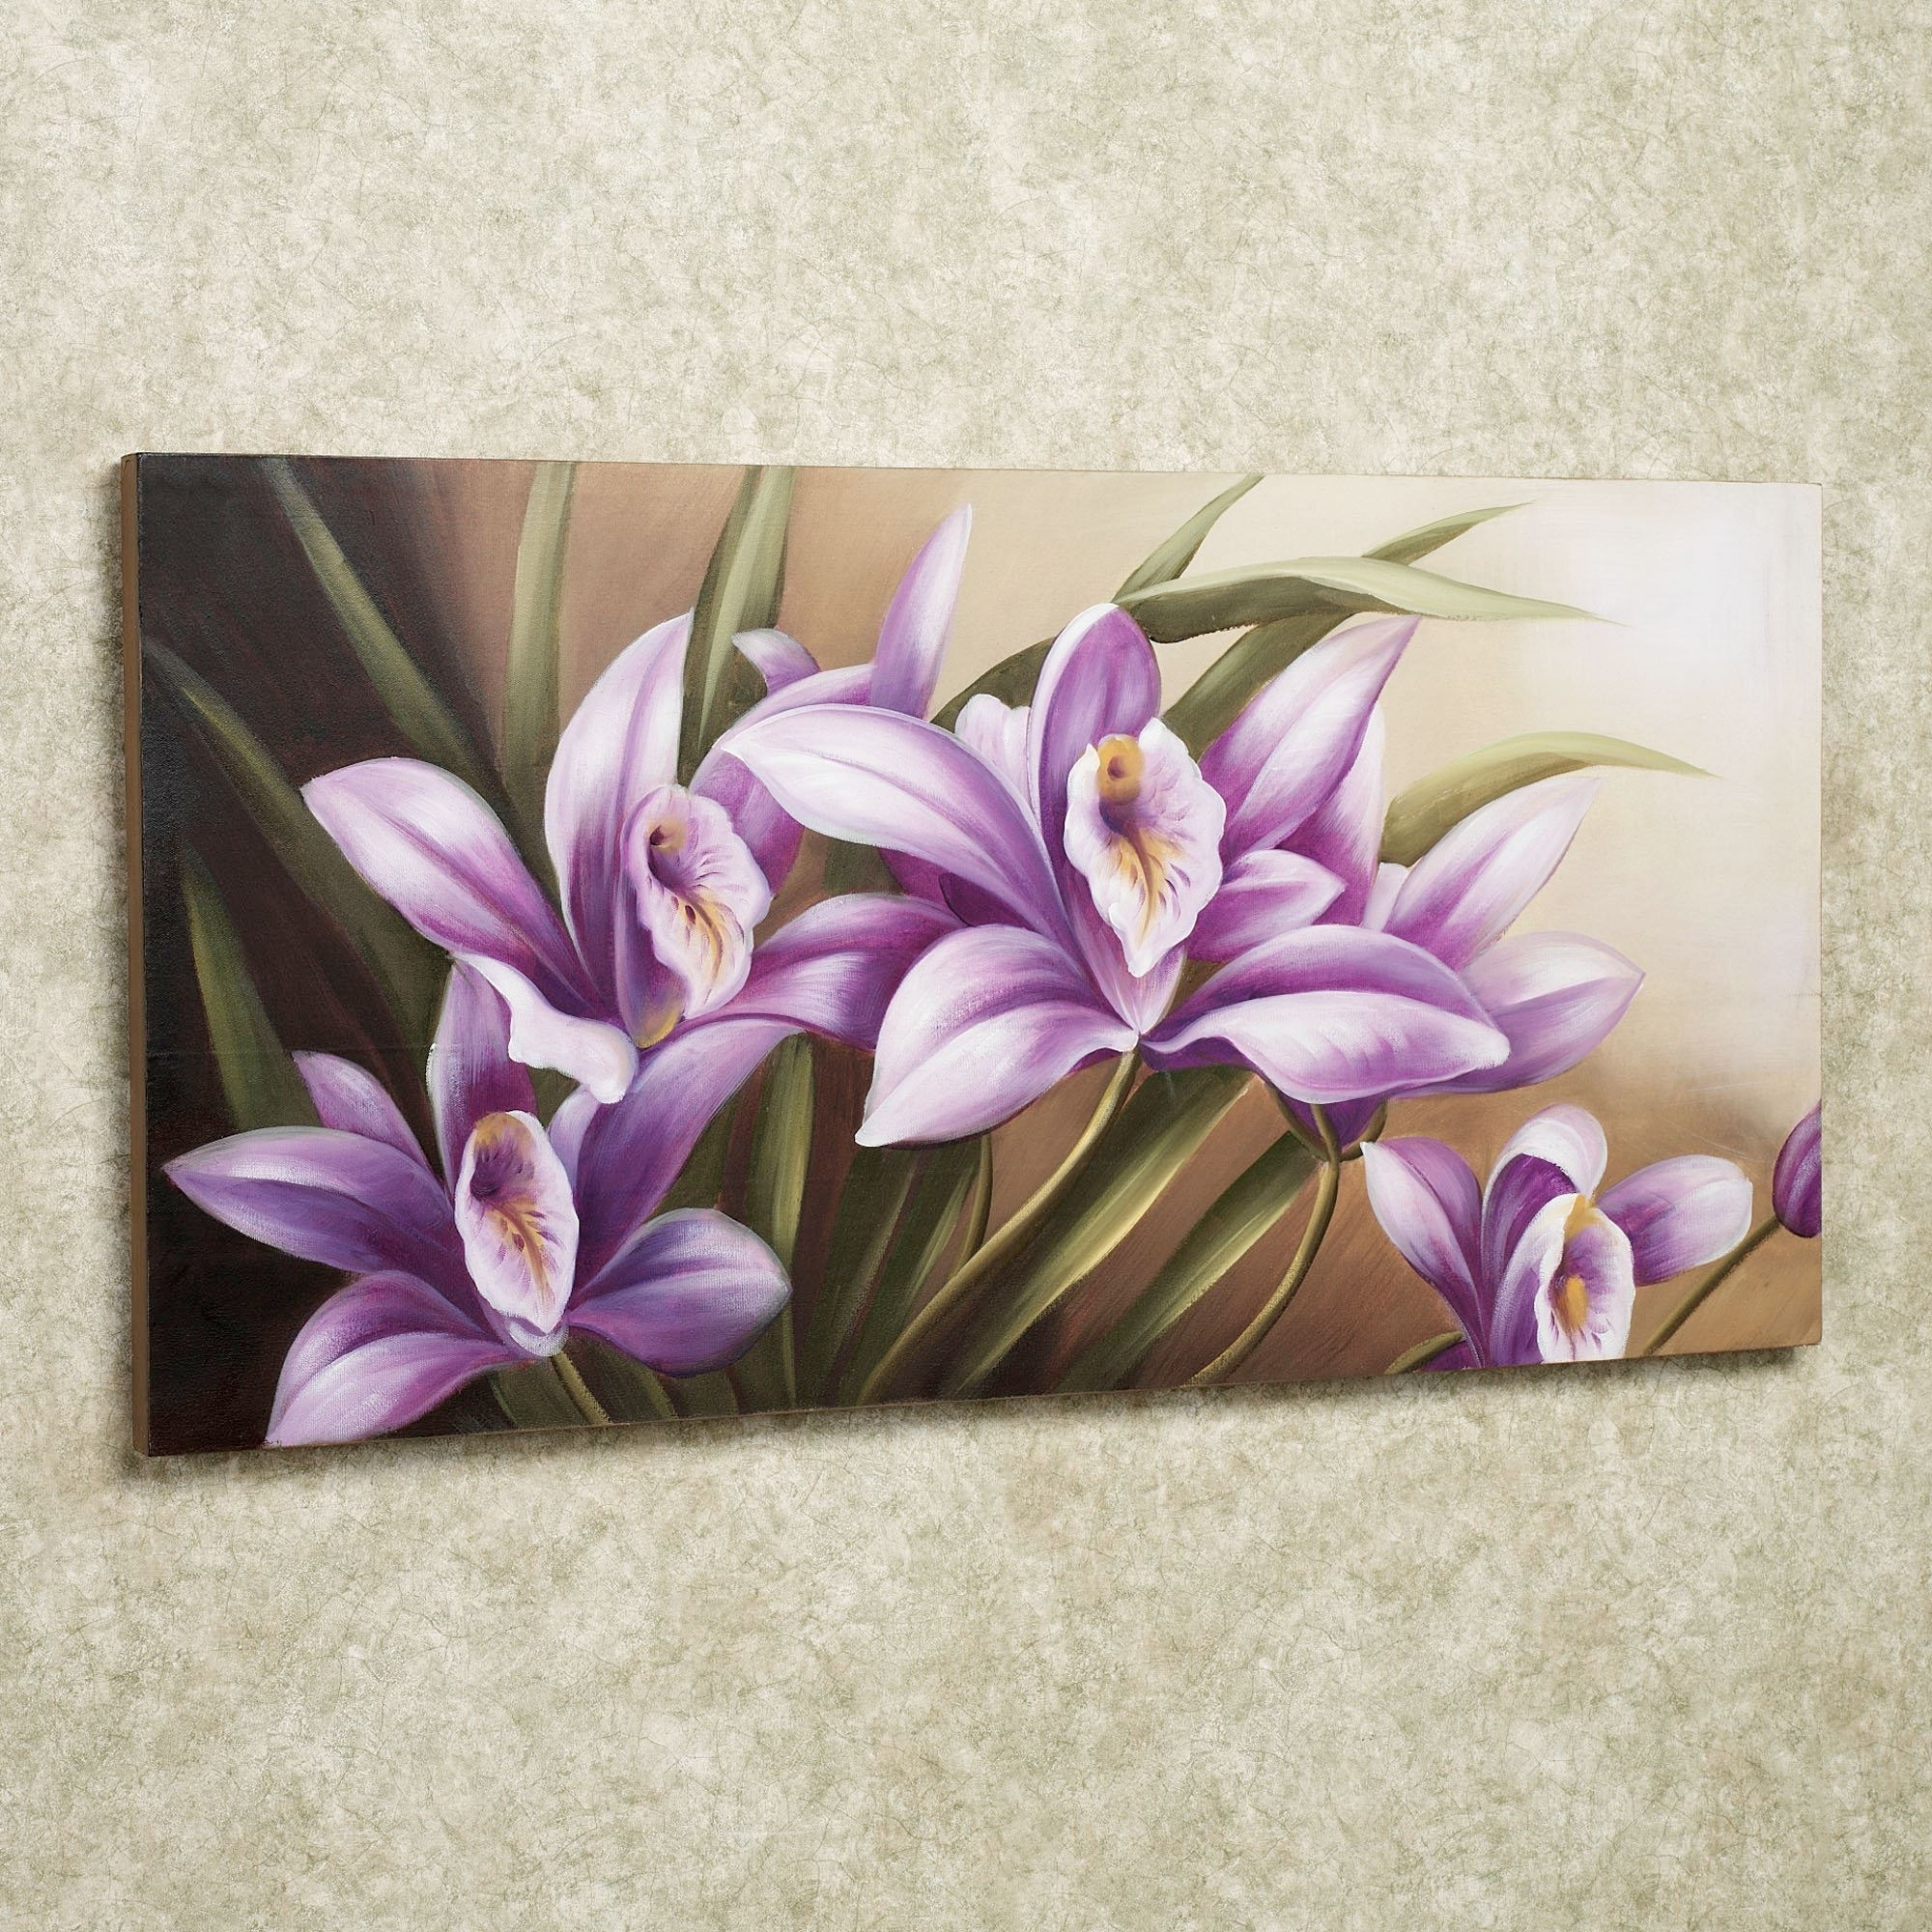 Wild Orchid Handpainted Floral Canvas Wall Art Regarding Most Popular Orchid Canvas Wall Art (View 15 of 15)